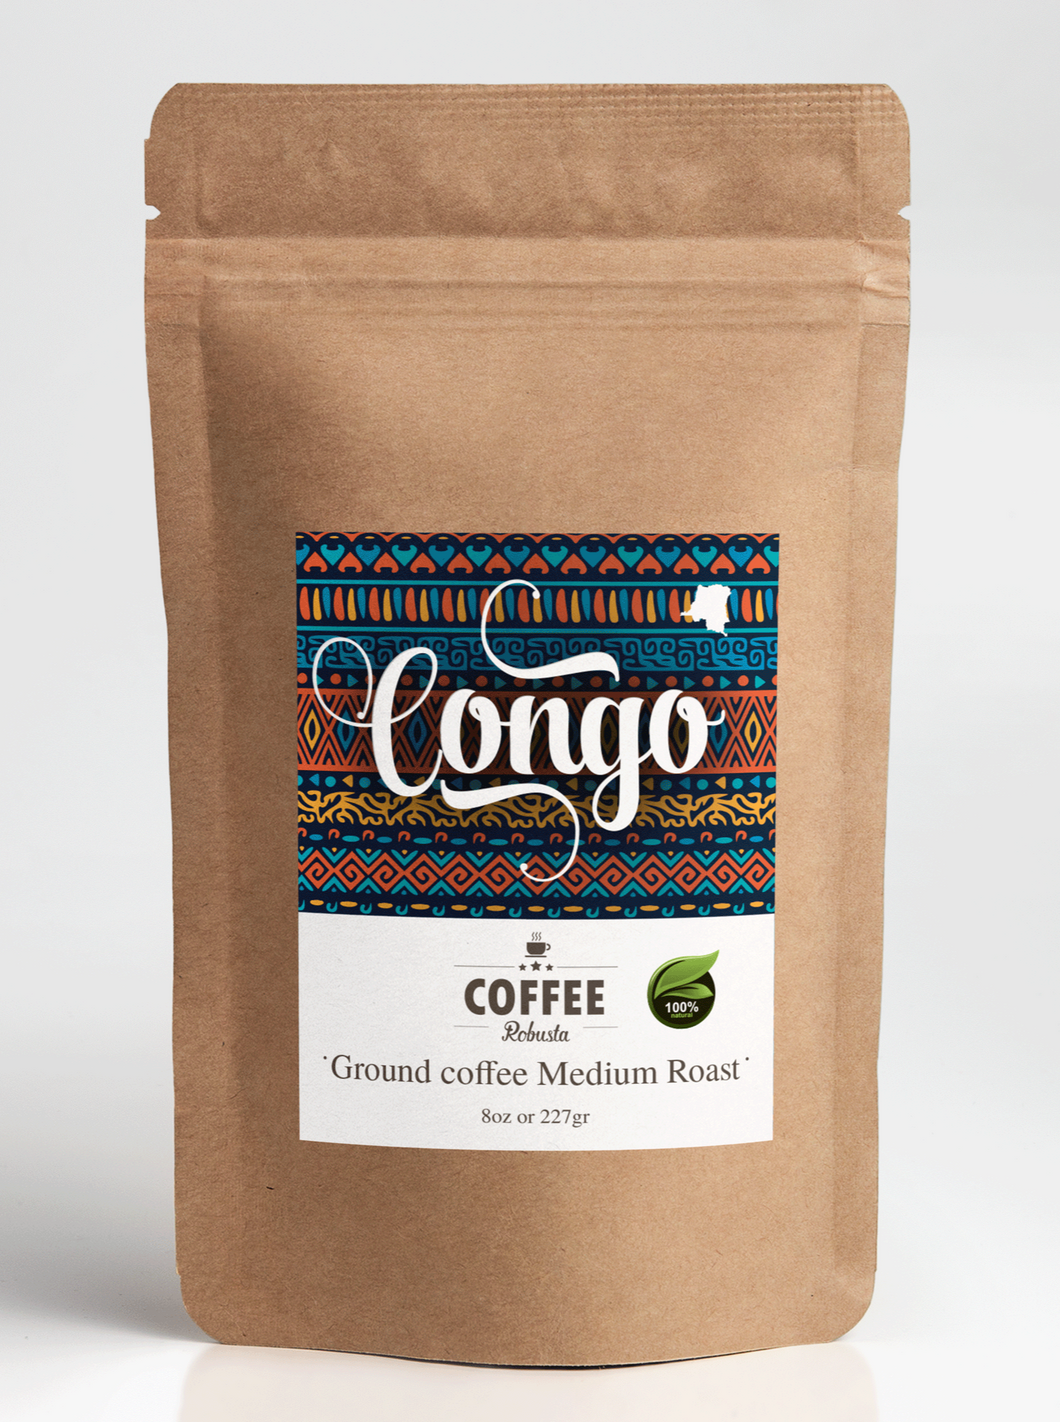 This coffee is a Kivu 3. Dark roast, for serious coffee lovers. This coffee contains notes of dark chocolate and sugar plum. Great to enjoy every morning with your hot freshly made donuts from Congo Coffee & Beignets locate at 298 Gerrard st E where we make our freshly made hot donuts